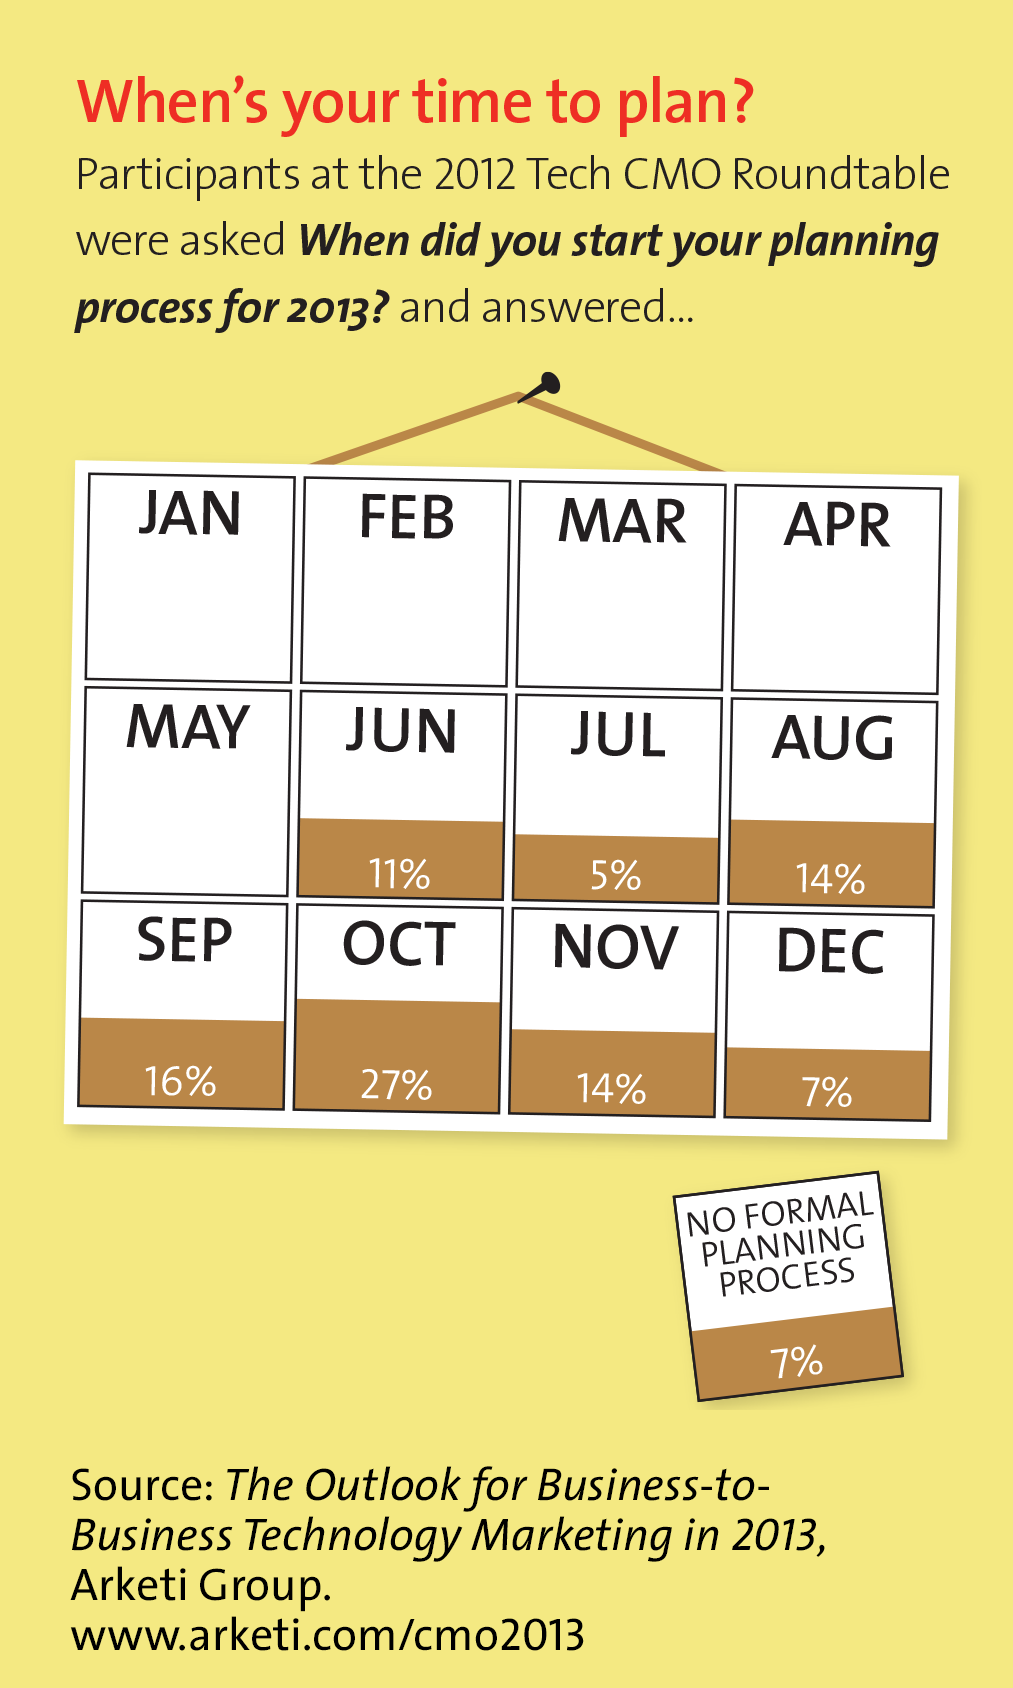 Tech CMO Roundtable 2013 chart 2 - Planning Timeframe